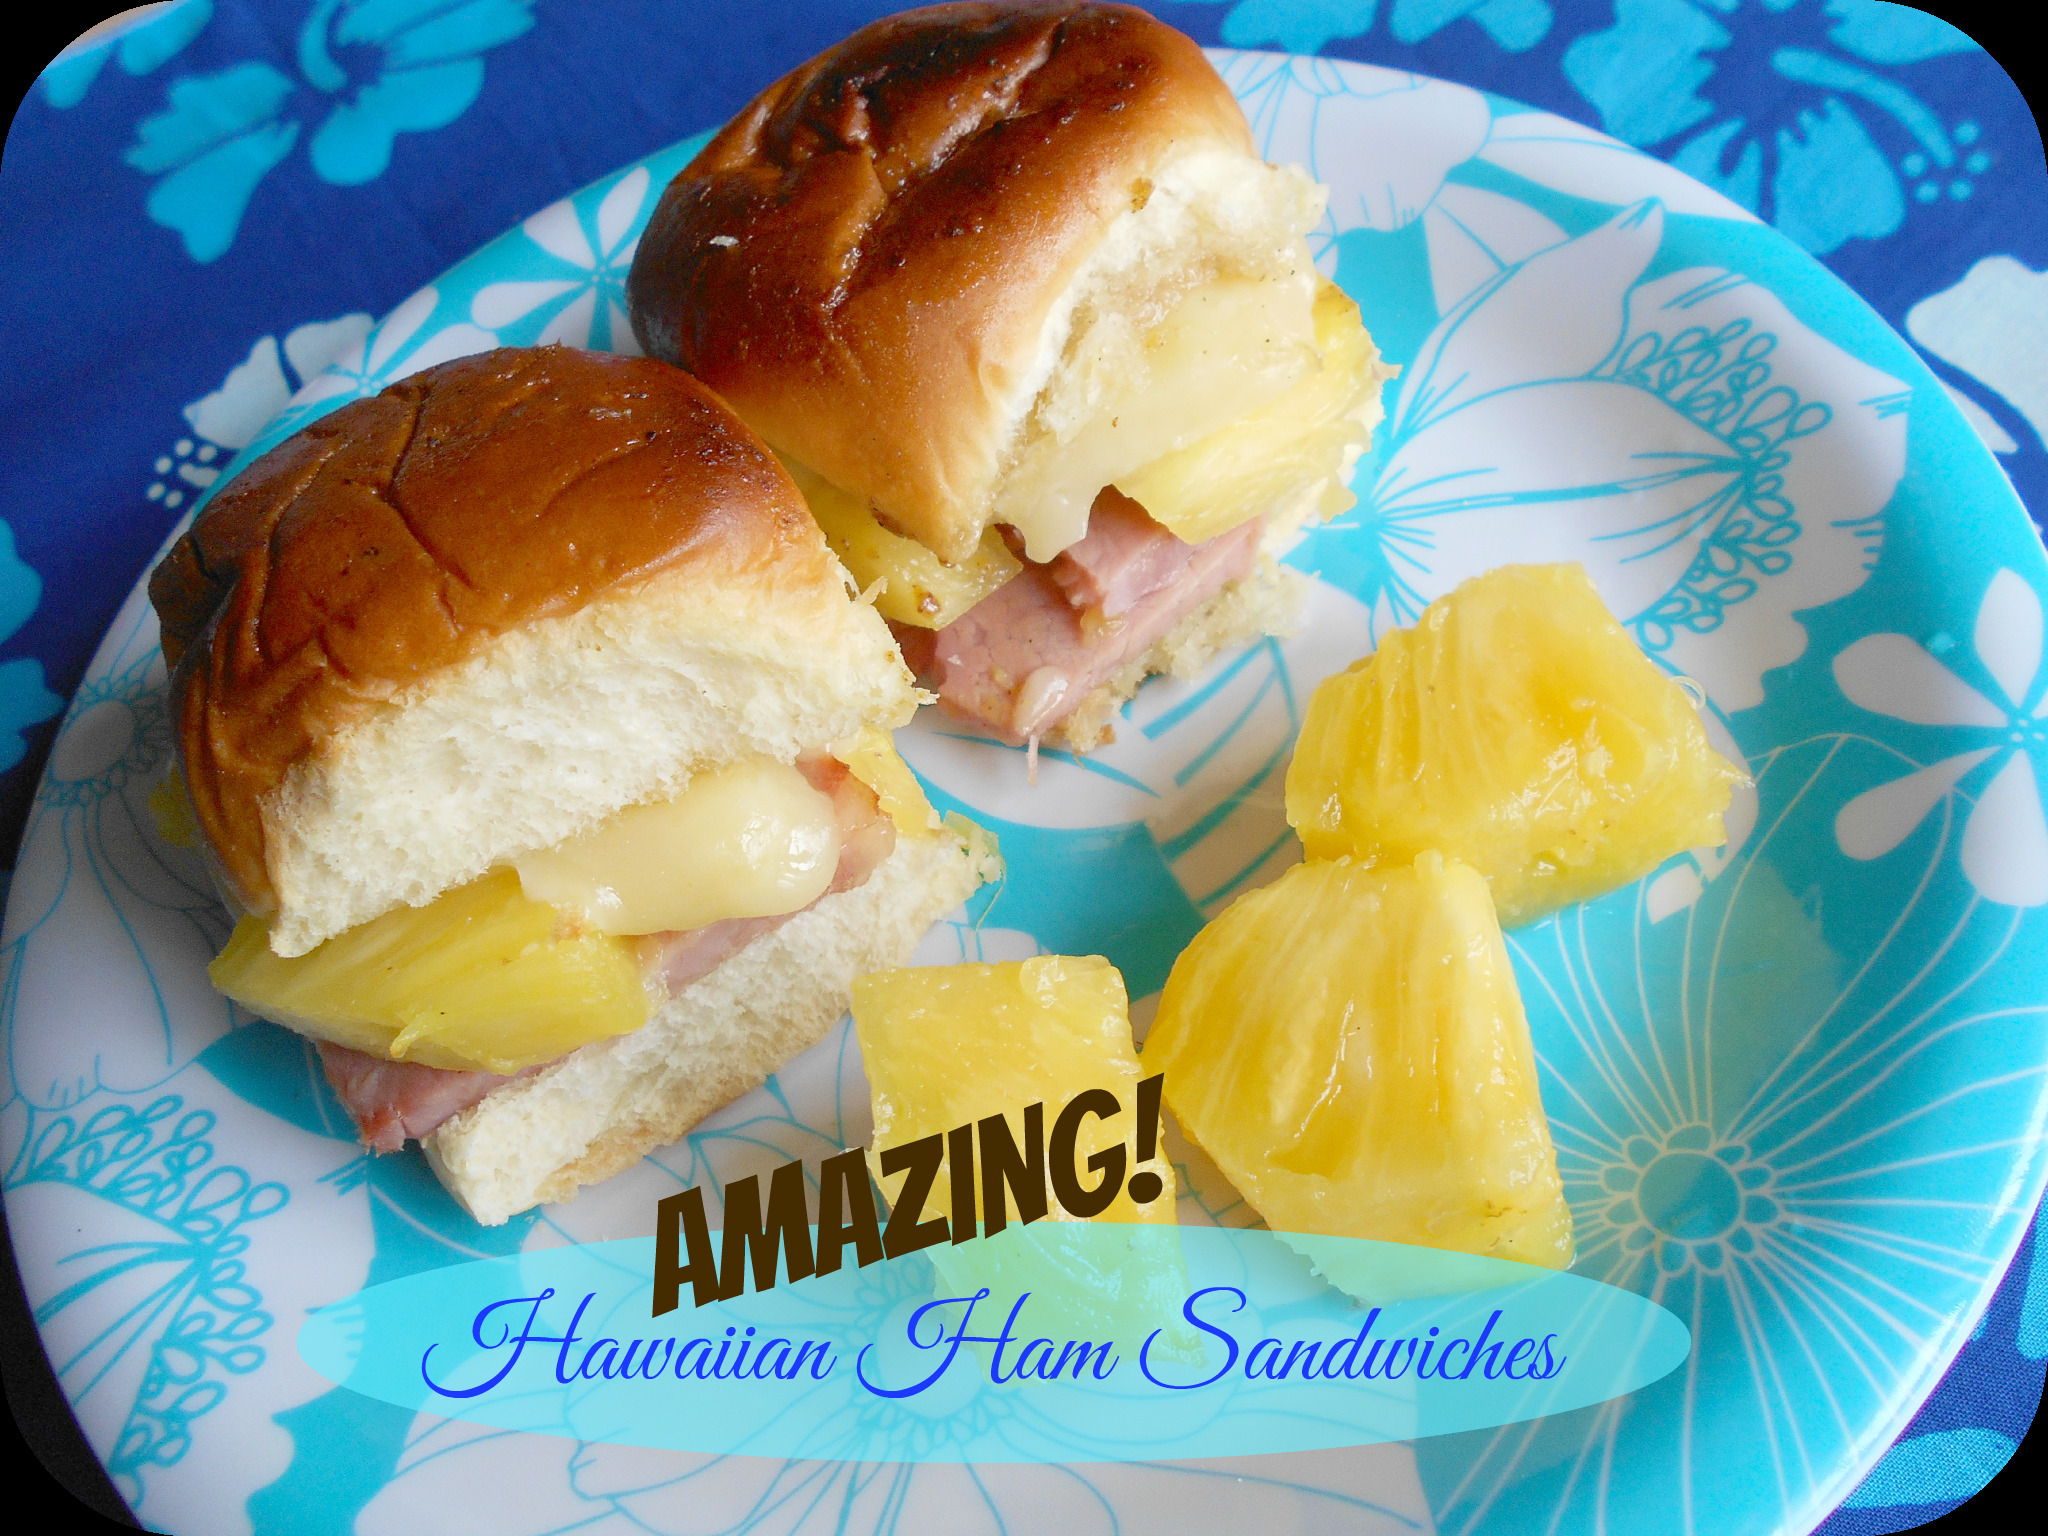 AMAZING! Hawaiian Ham Sandwiches